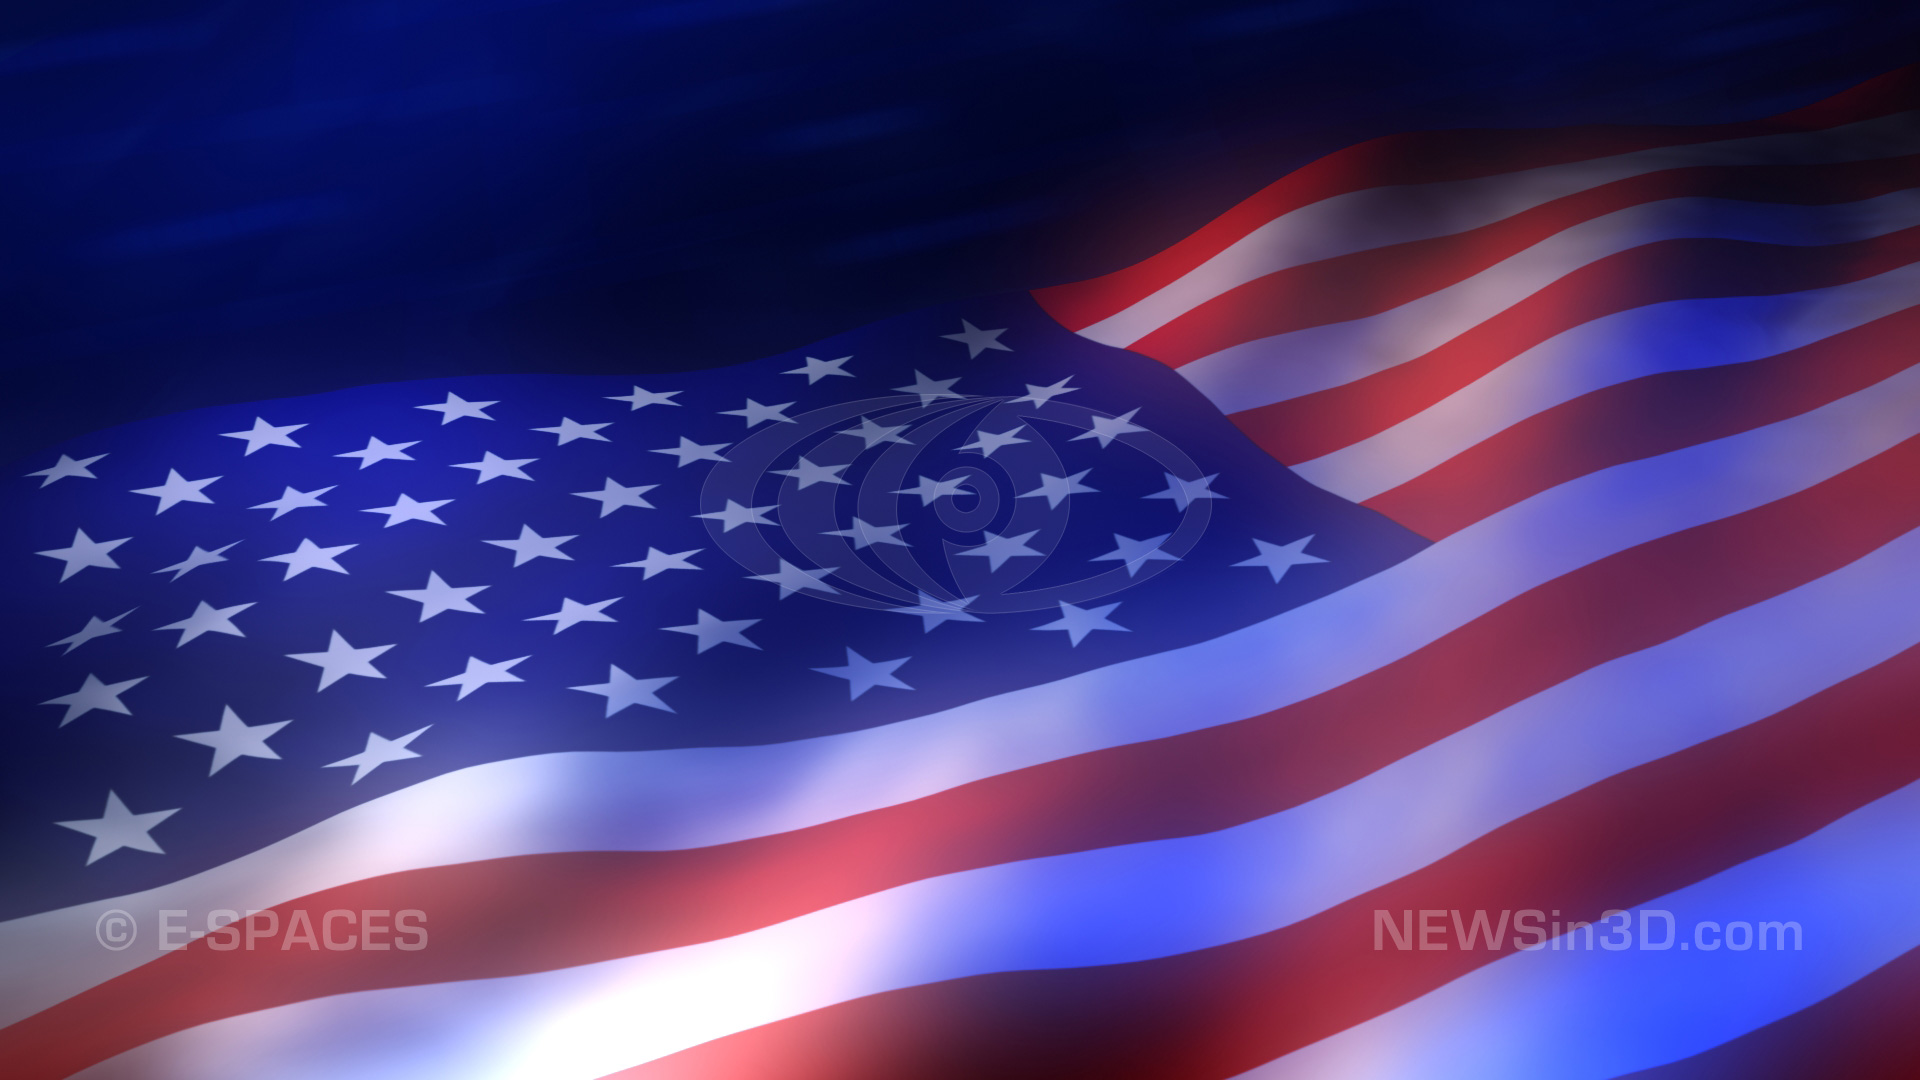 US flag background High Definition preview still 1920x1080